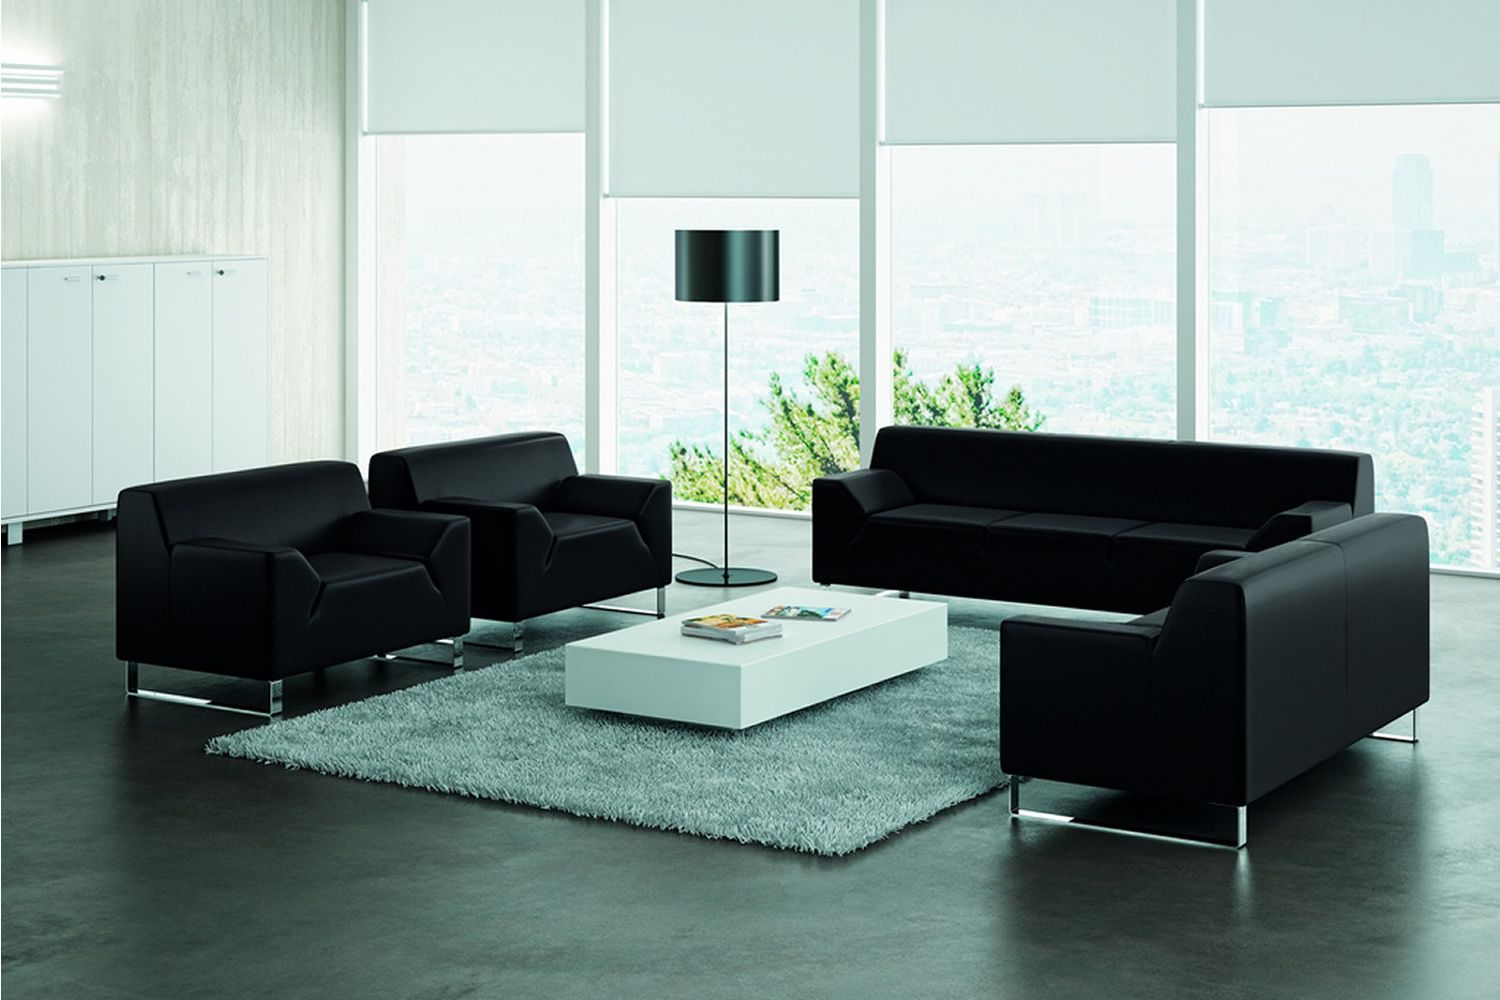 asso 1 2 oder 3 sitzer sofa f r wartezimmer mit. Black Bedroom Furniture Sets. Home Design Ideas